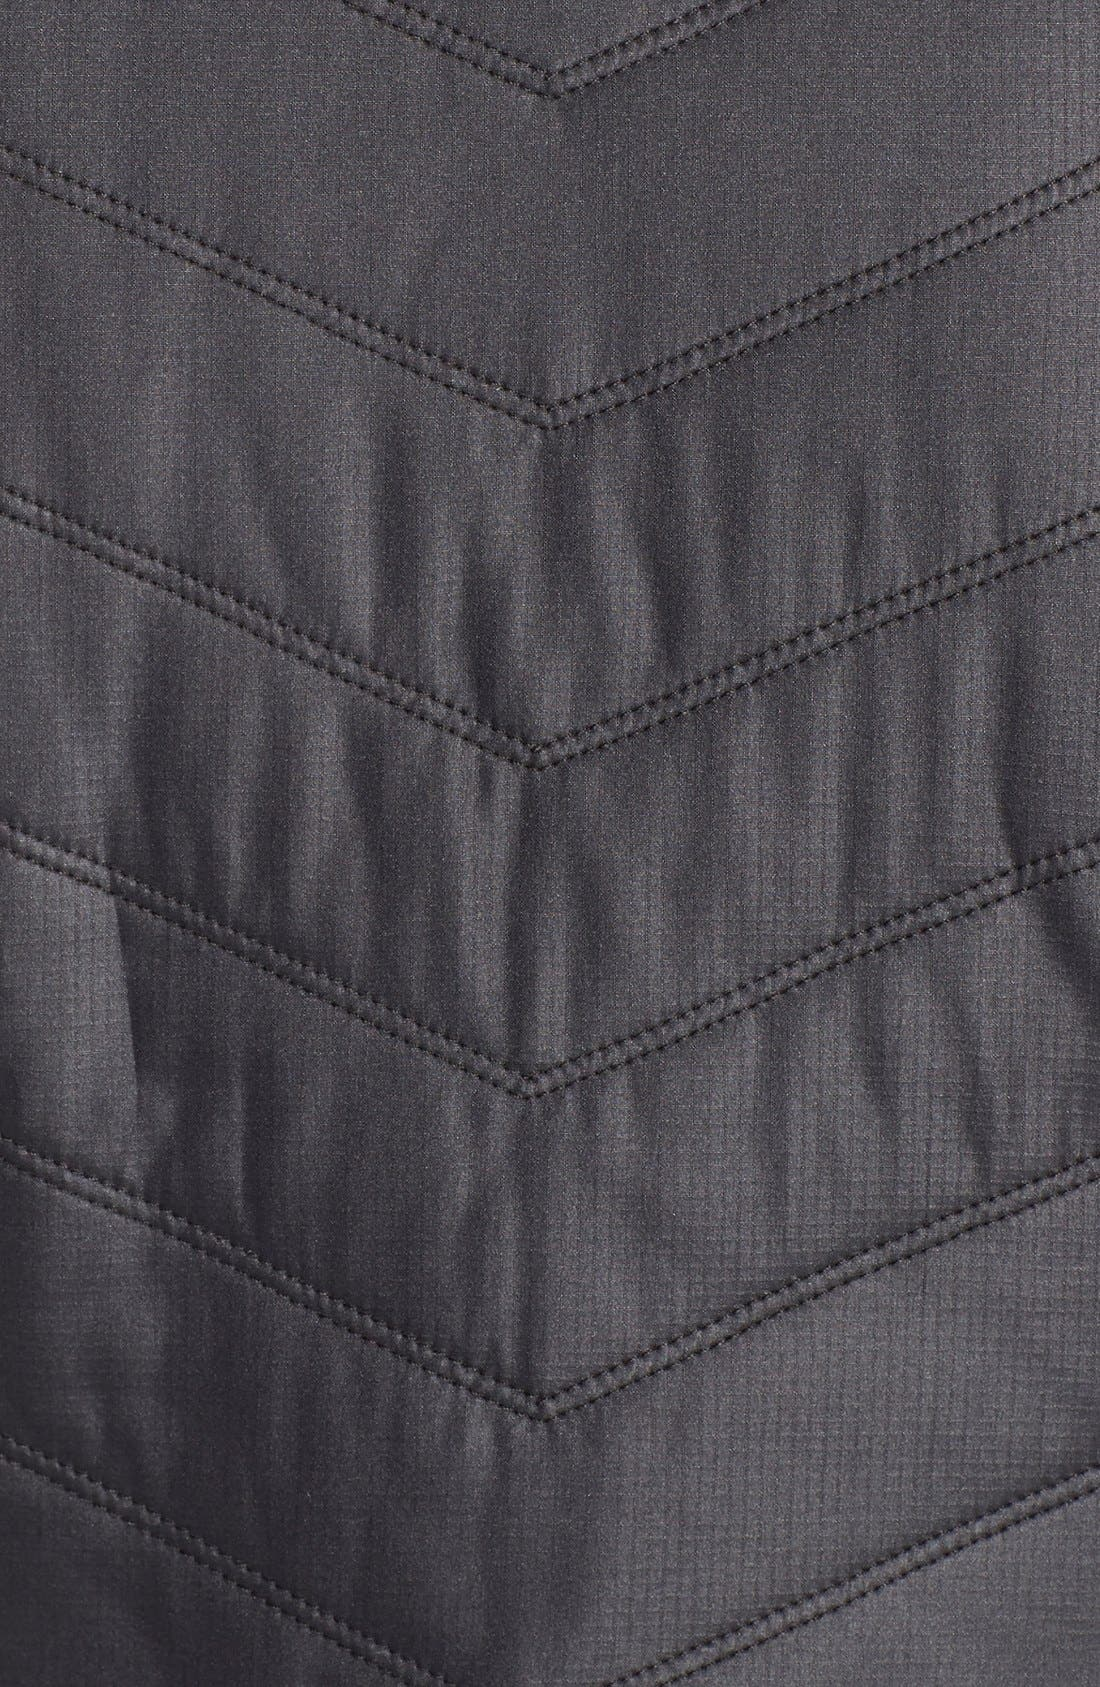 Zelfusion Reflective Quilted Jacket,                             Alternate thumbnail 10, color,                             001